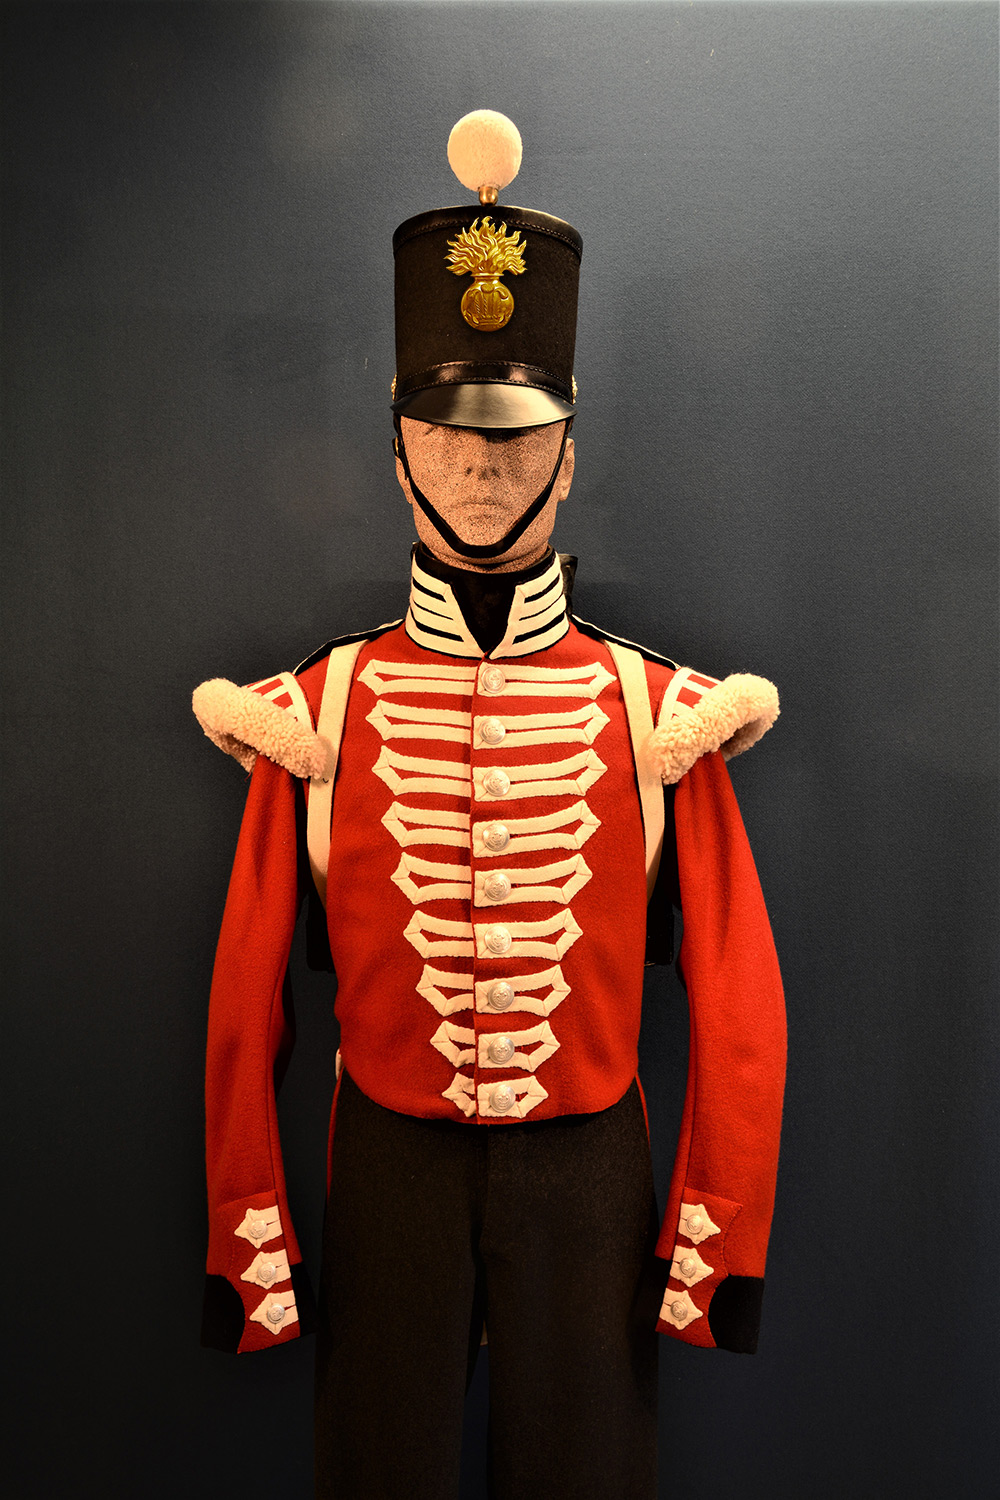 British, 23rd (Royal Welch Fusiliers) Regiment of Foot, 1854